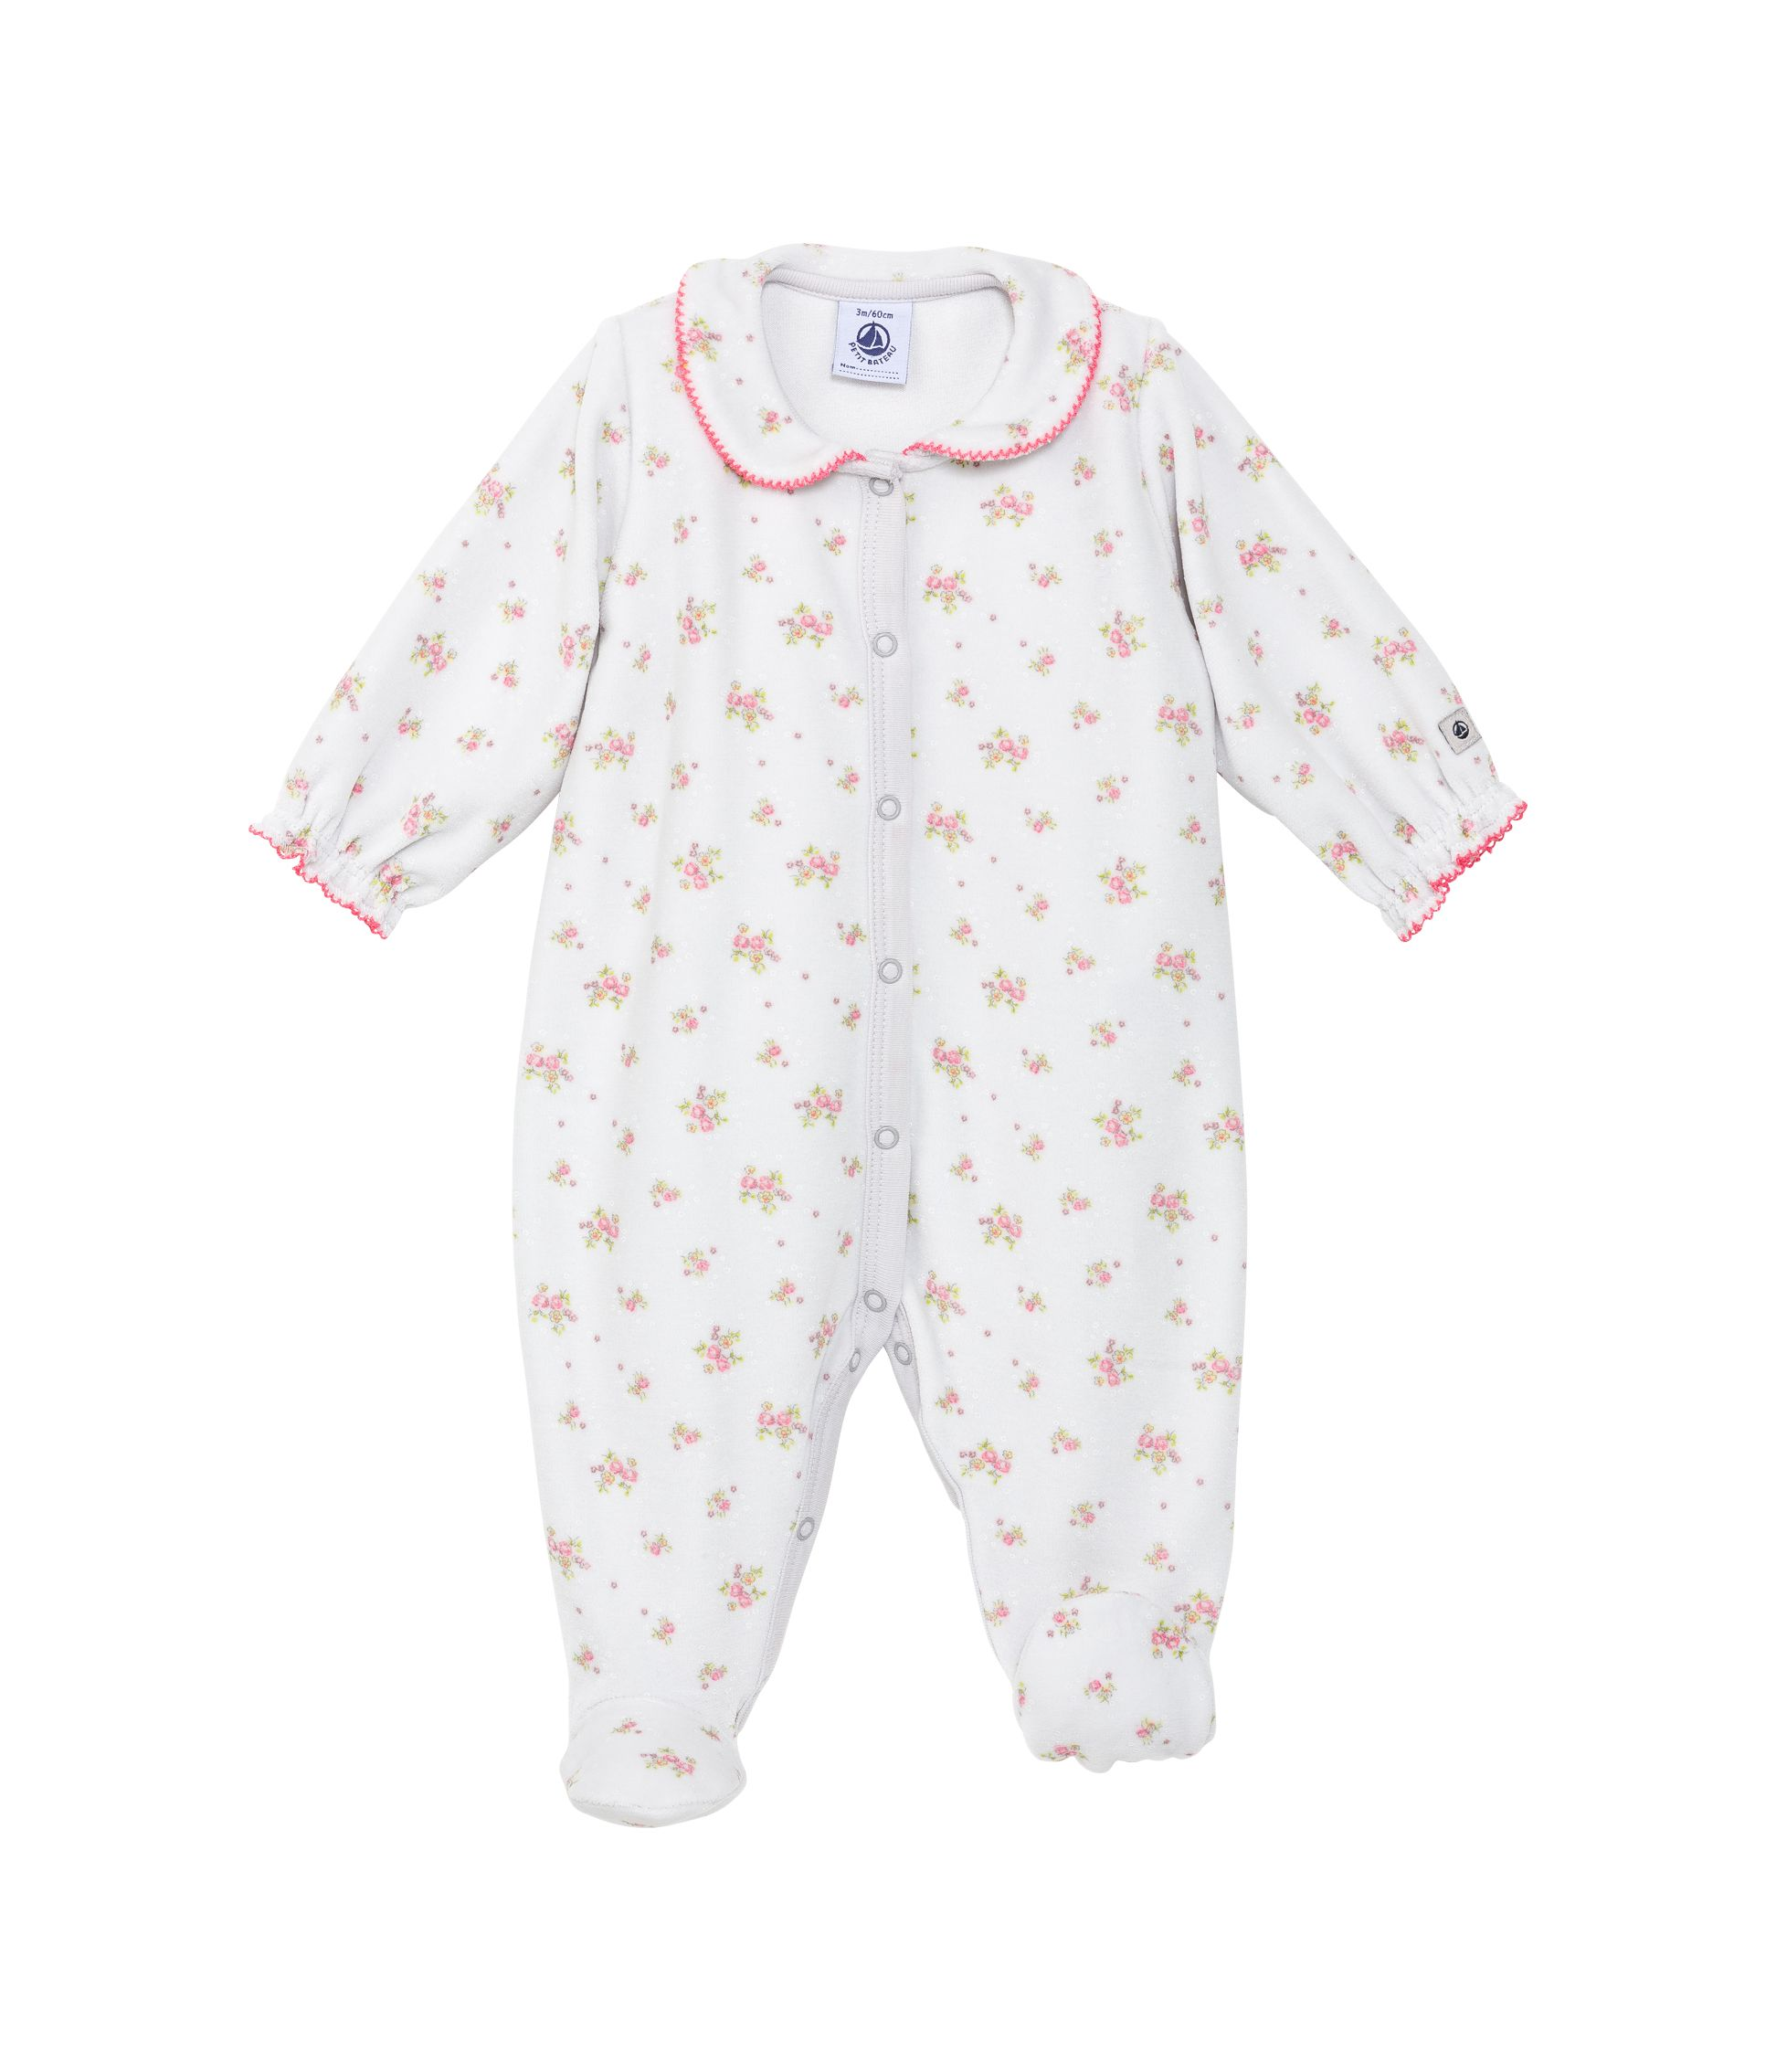 Baby girls floral sleepsuit